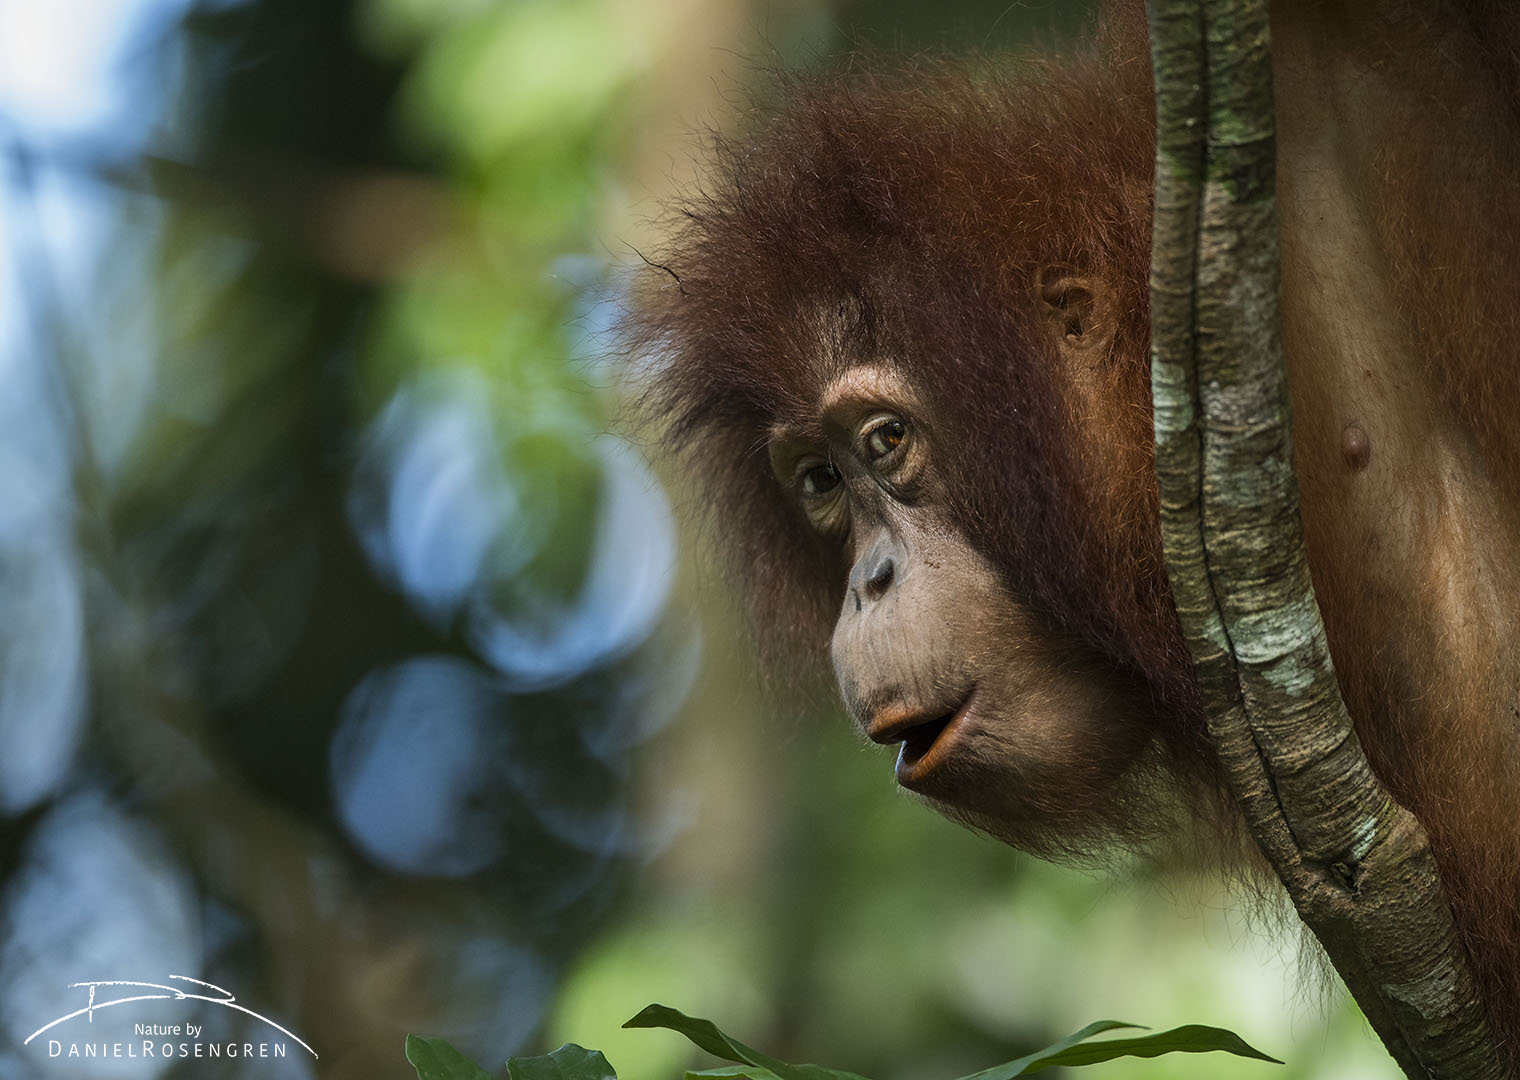 The cheekiest student in jungle school, Suro, always looking for mischief. © Daniel Rosengren